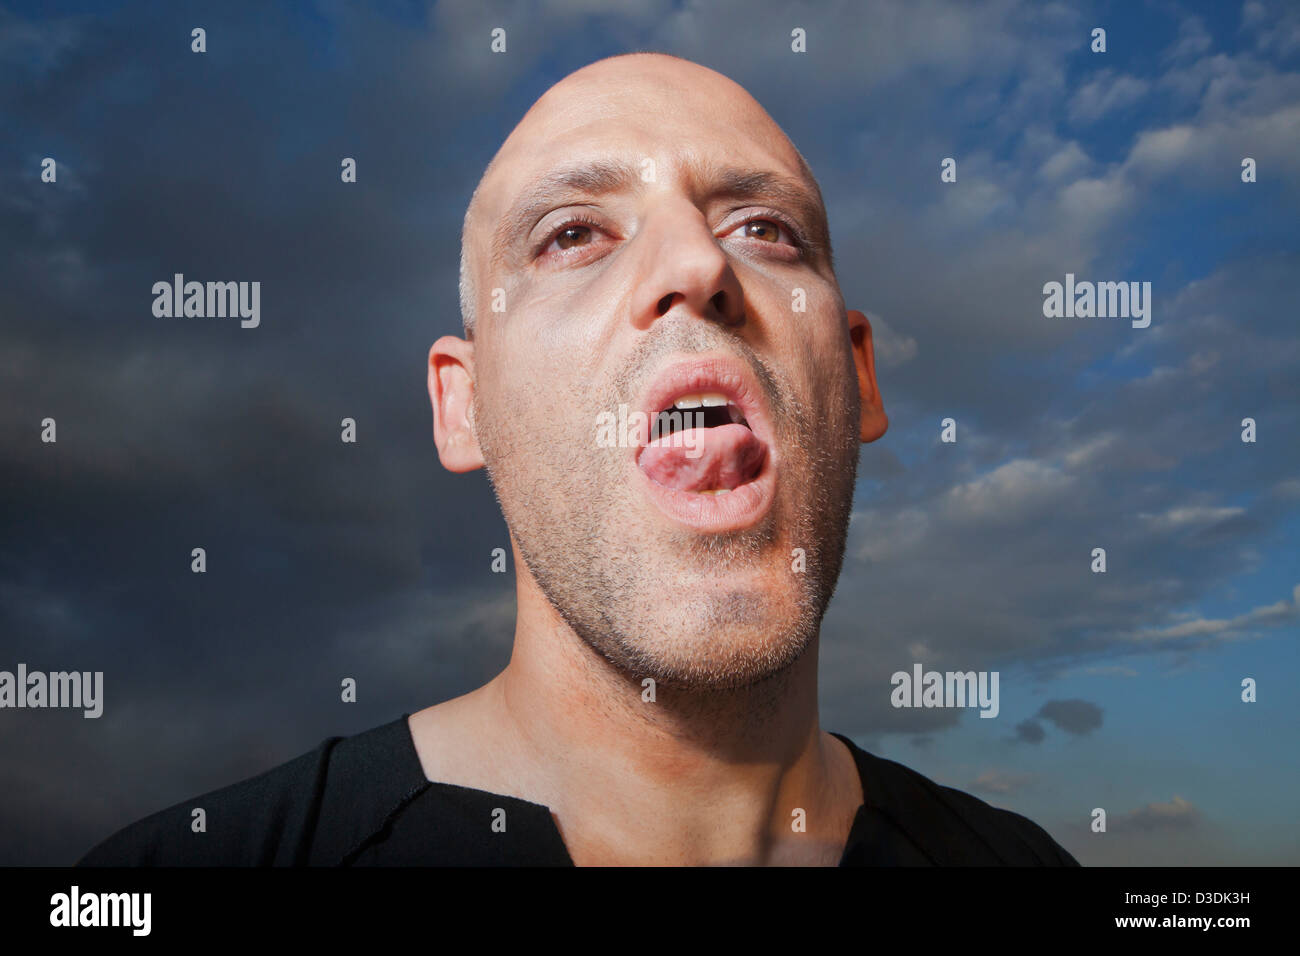 Close-up of a man sticking his tongue out - Stock Image